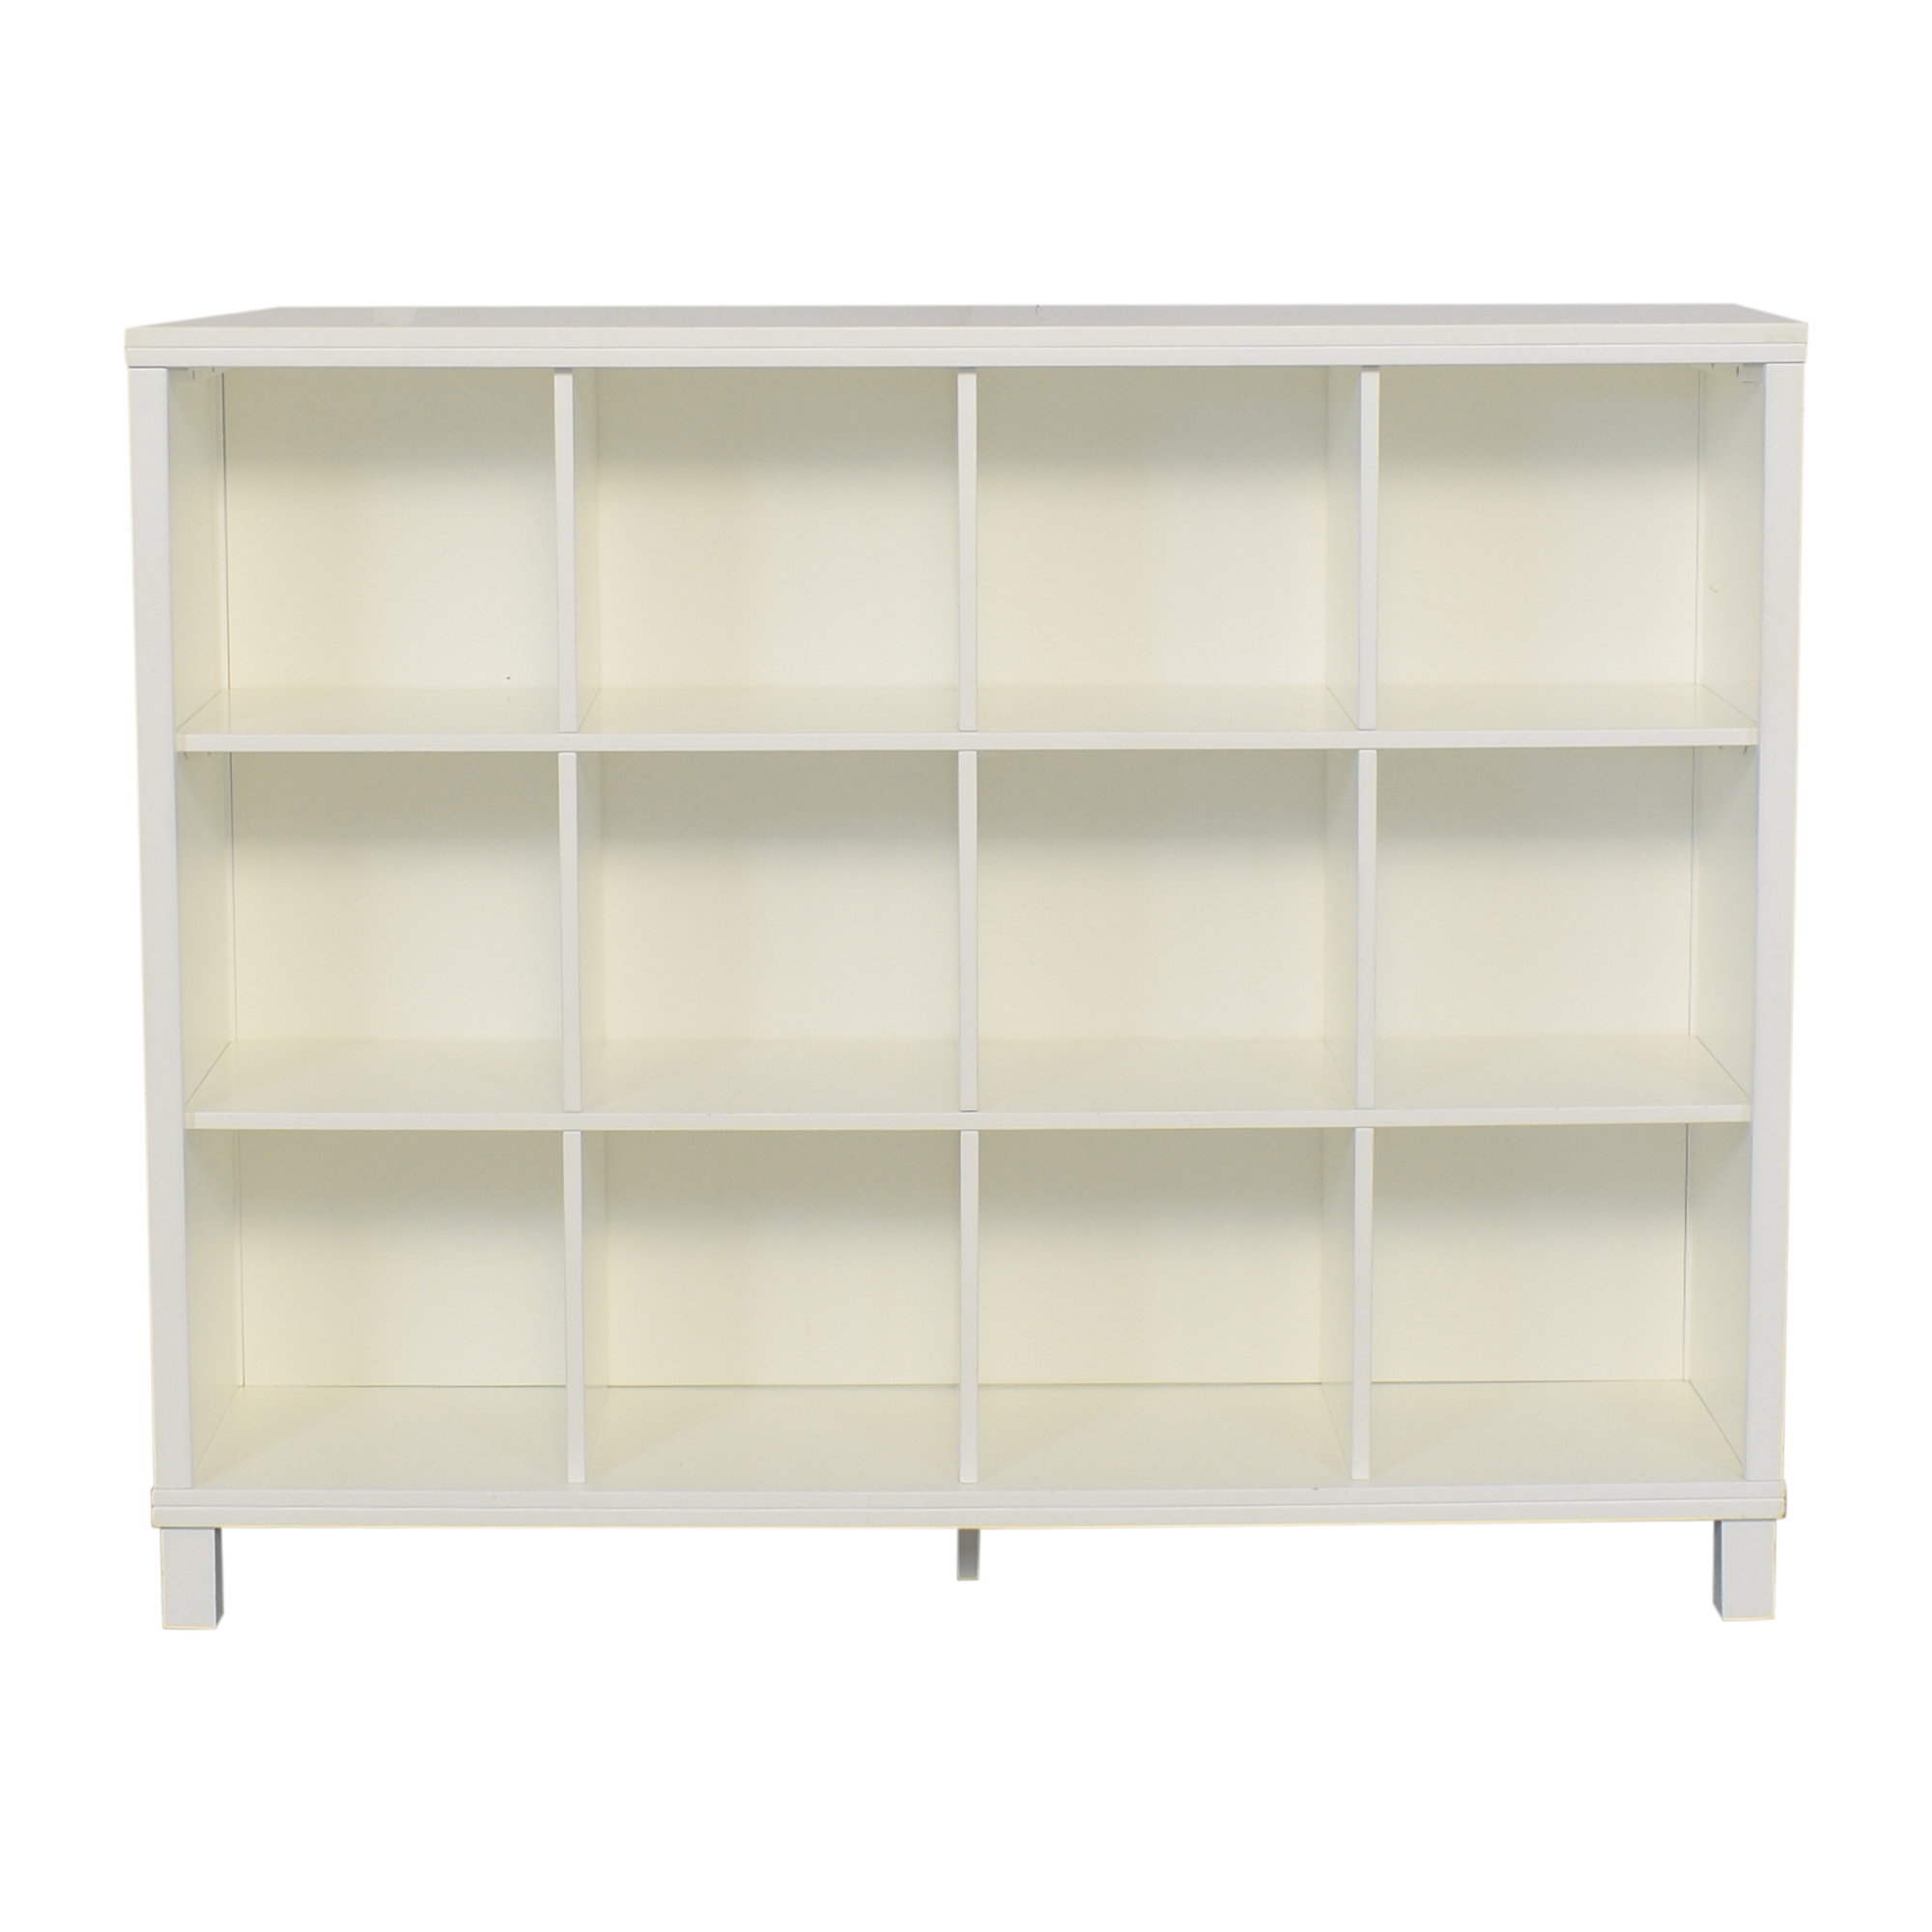 buy Land of Nod Storage Shelving Unit Land of Nod Bookcases & Shelving